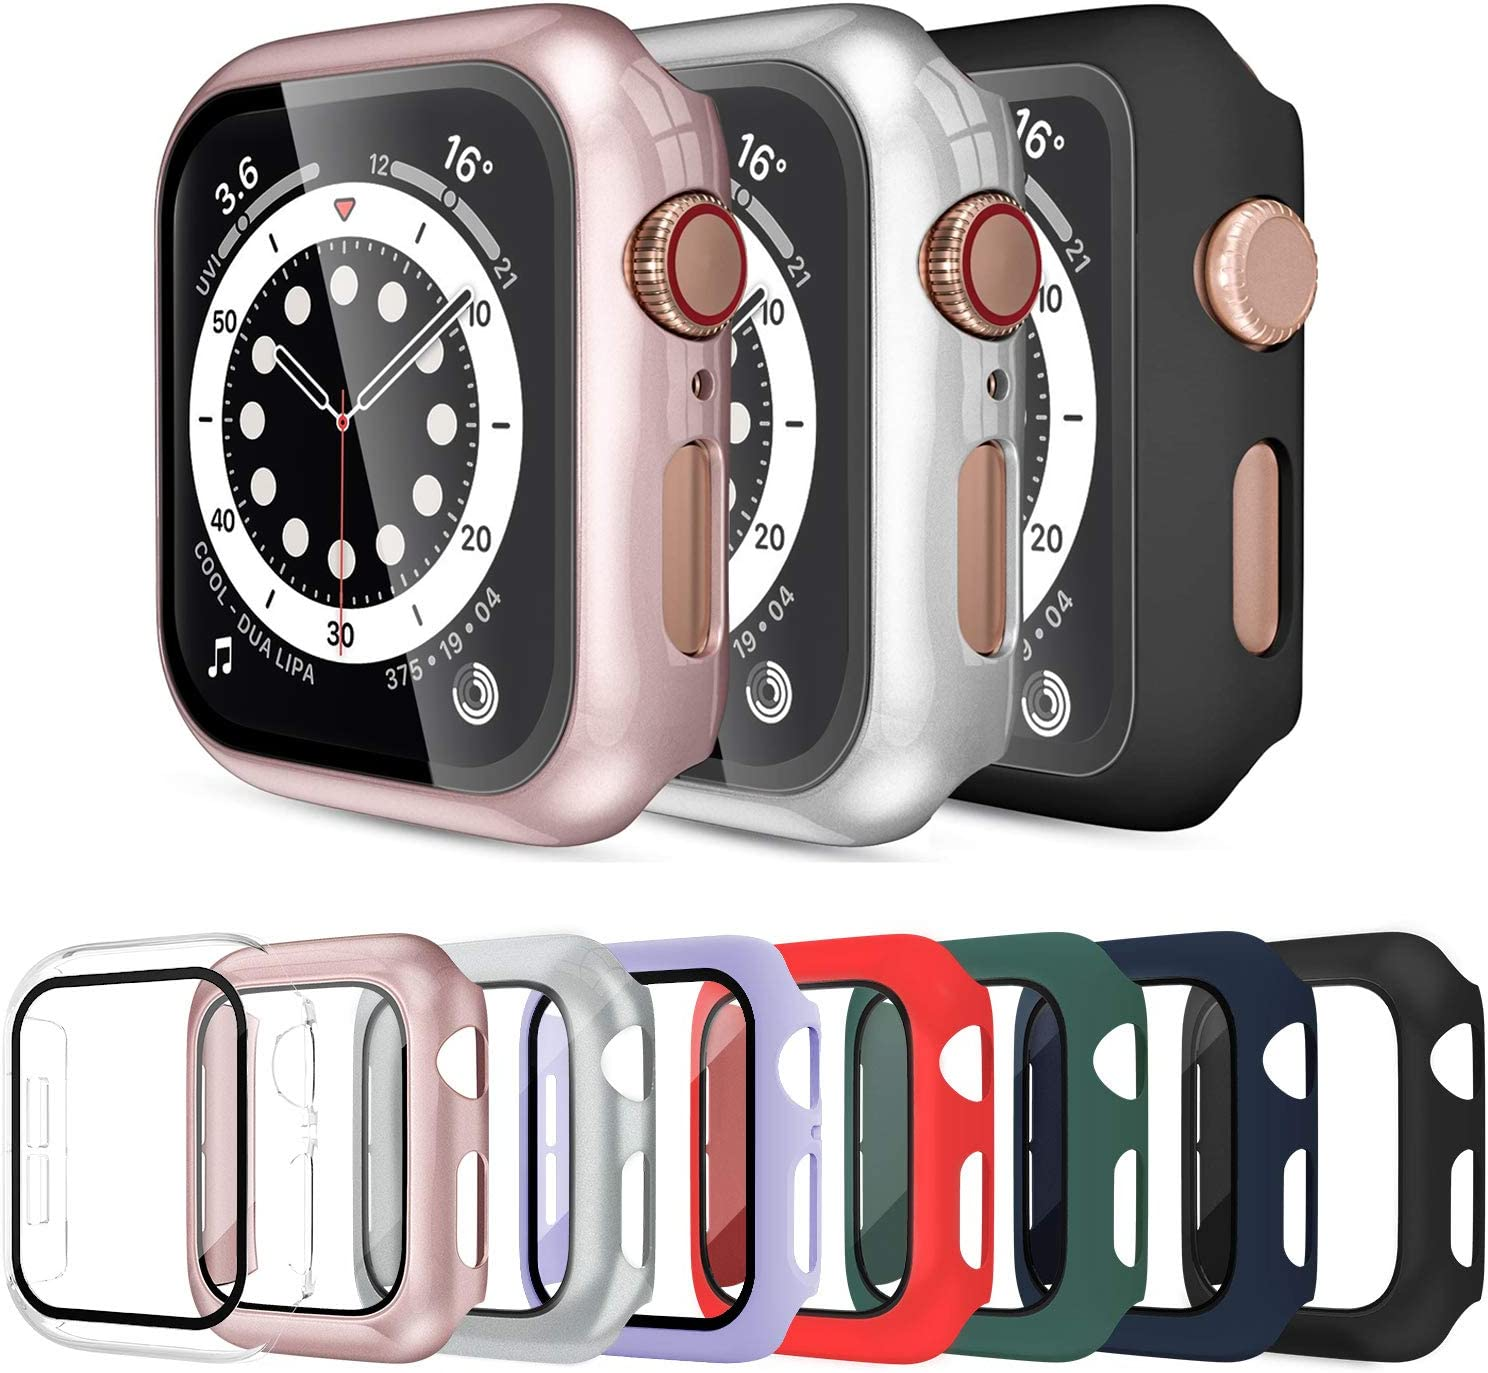 Surundo 8 Pack Apple Watch Case 42mm Compatible with iWatch Series 3/2 / 1, Built-in Tempered Glass Screen Protector Full Protective Cover Bumper for Apple Watch Accessories 42mm